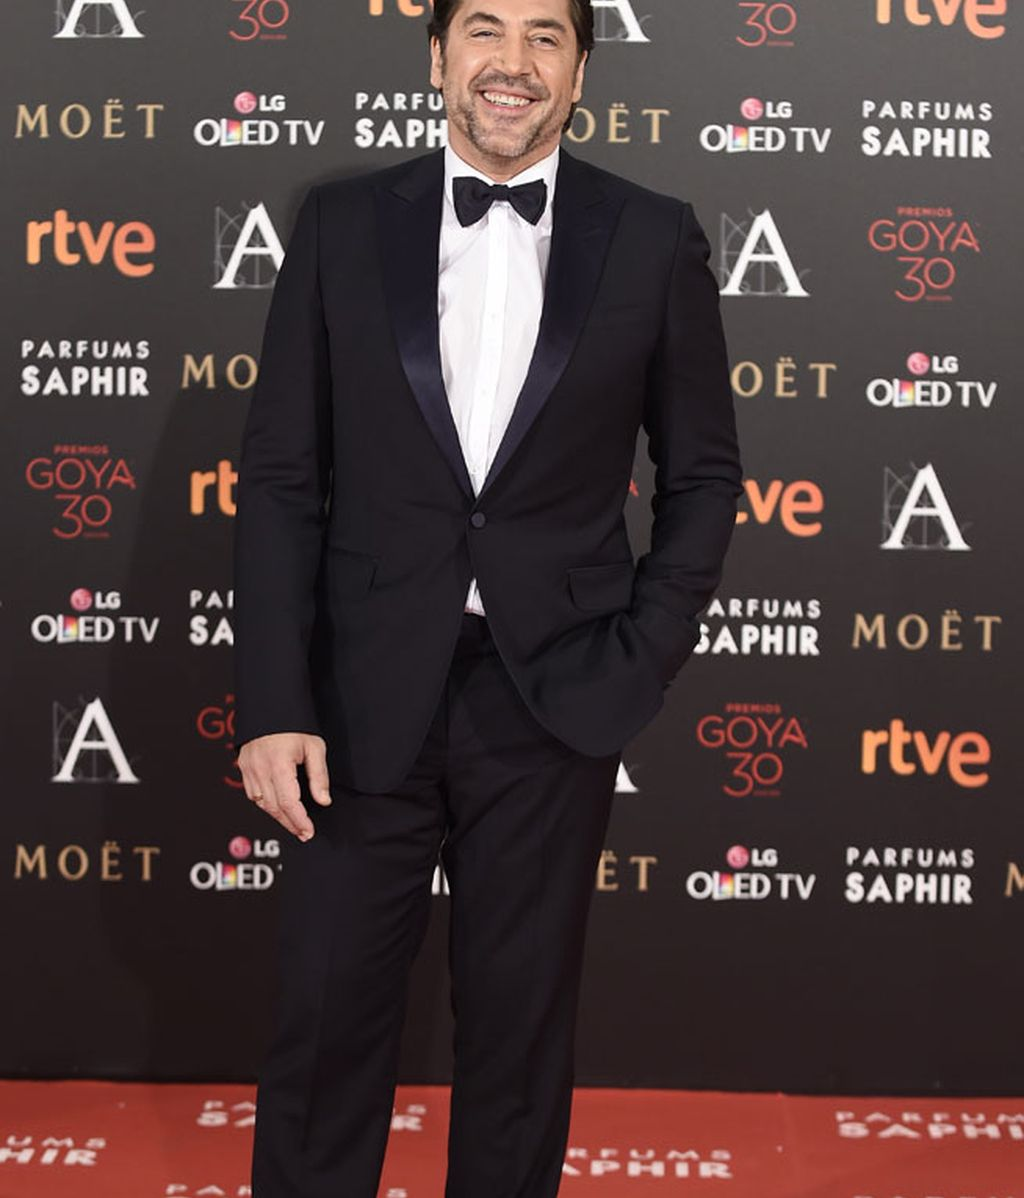 Javier Bardem, impecable